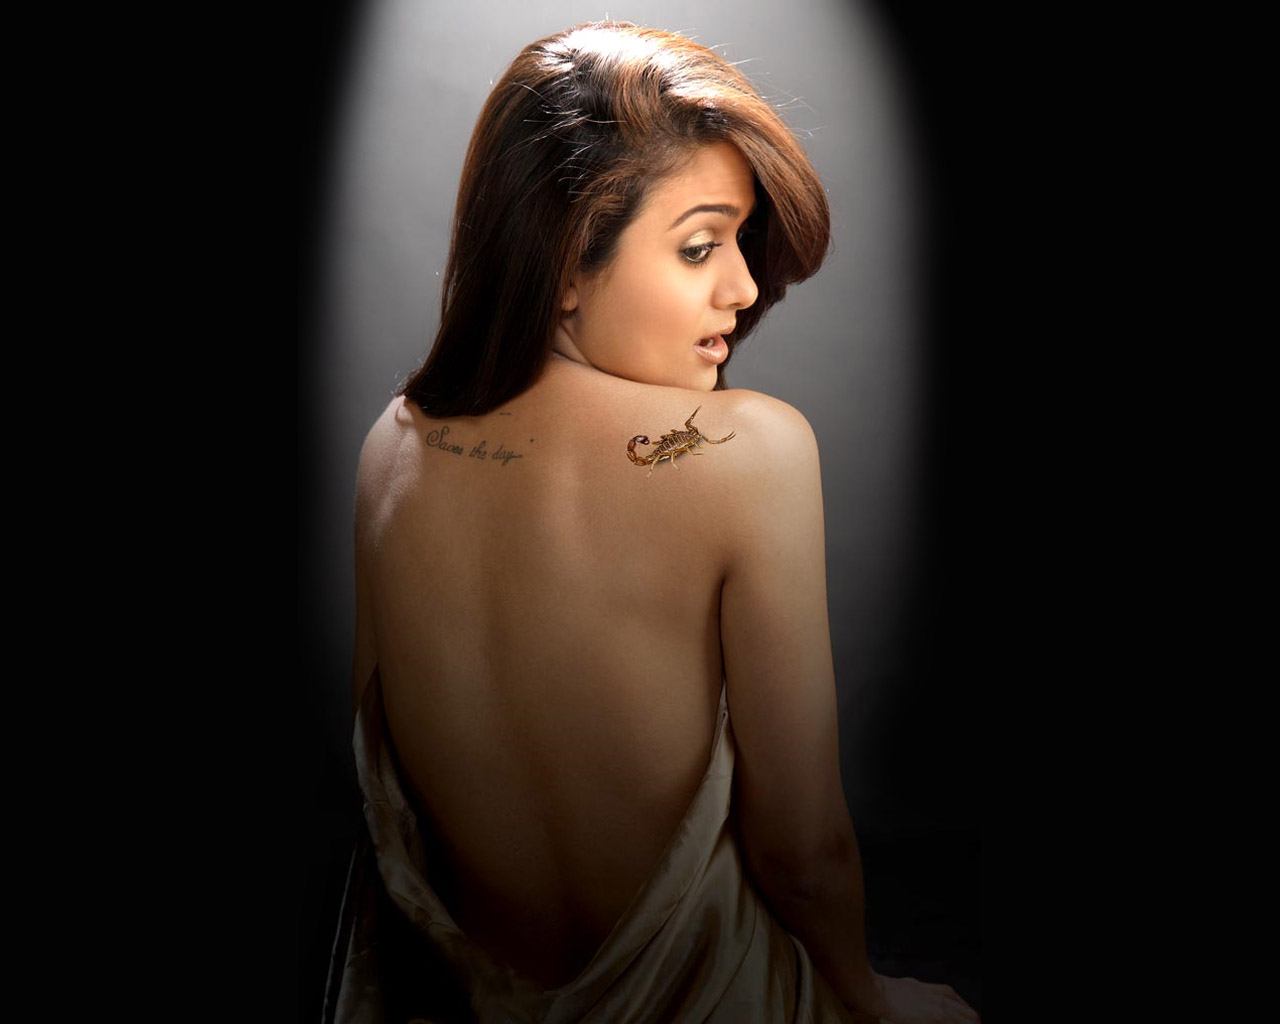 Something also Amrita arora hot bollywood actress happens